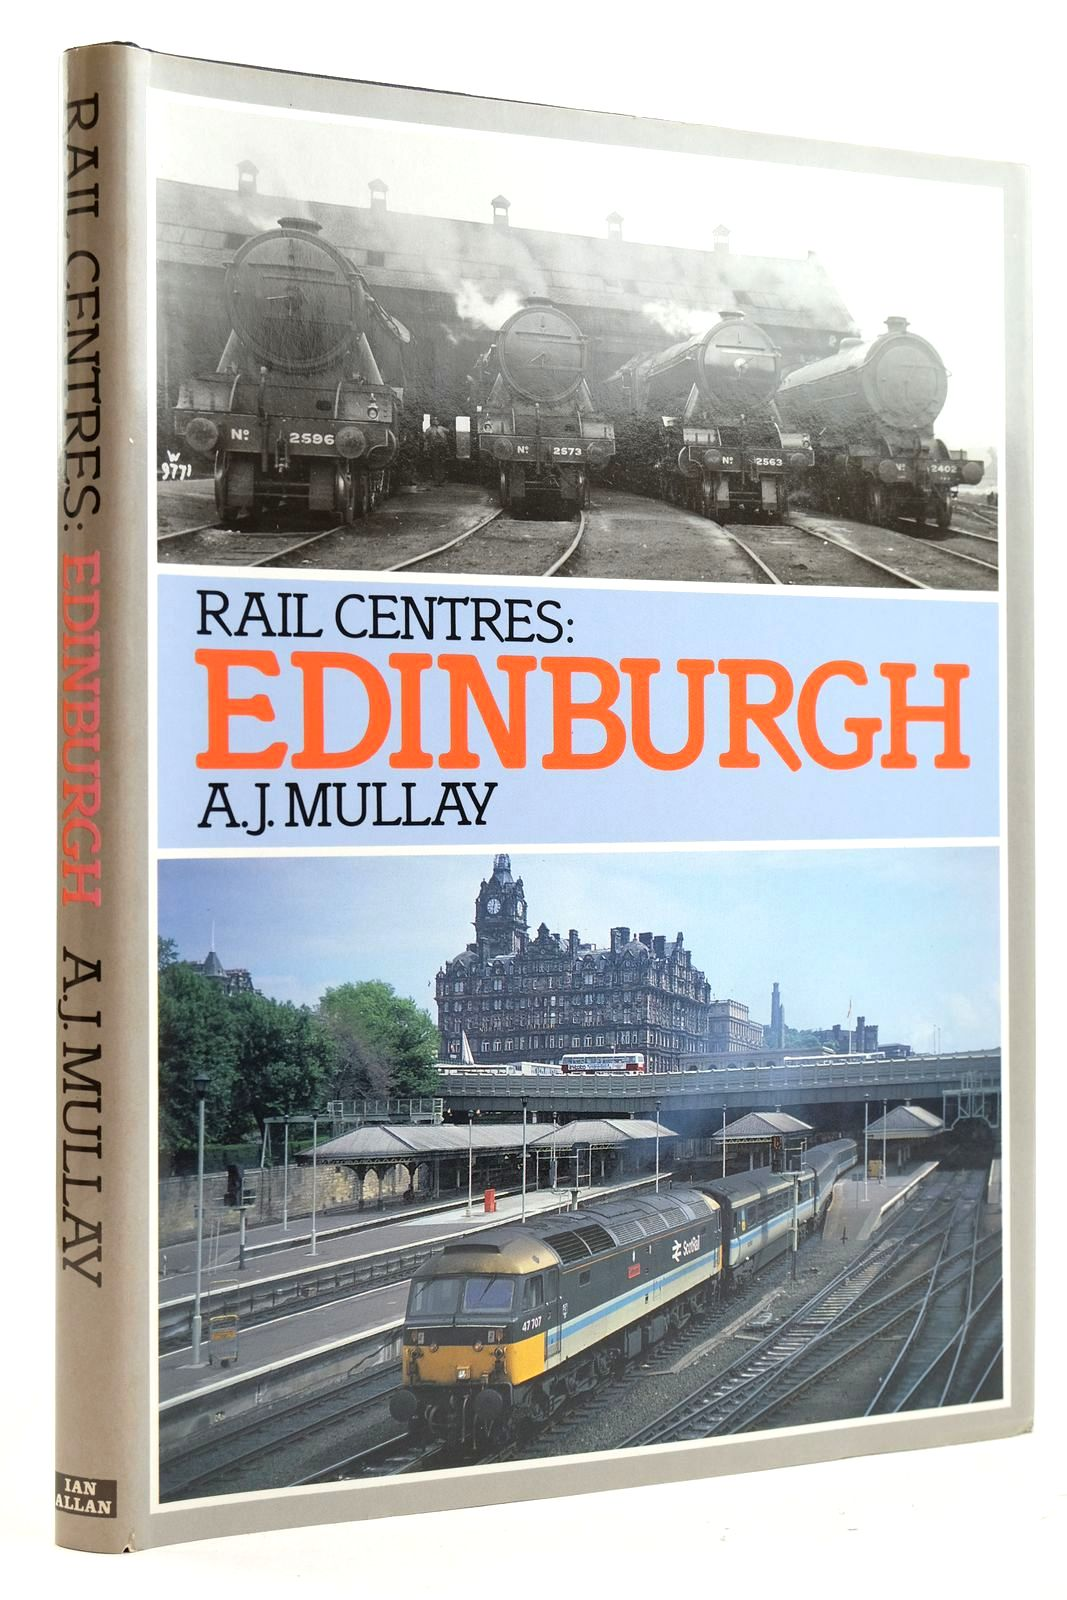 Photo of RAIL CENTRES: EDINBURGH written by Mullay, A.J. published by Ian Allan Ltd. (STOCK CODE: 2133005)  for sale by Stella & Rose's Books